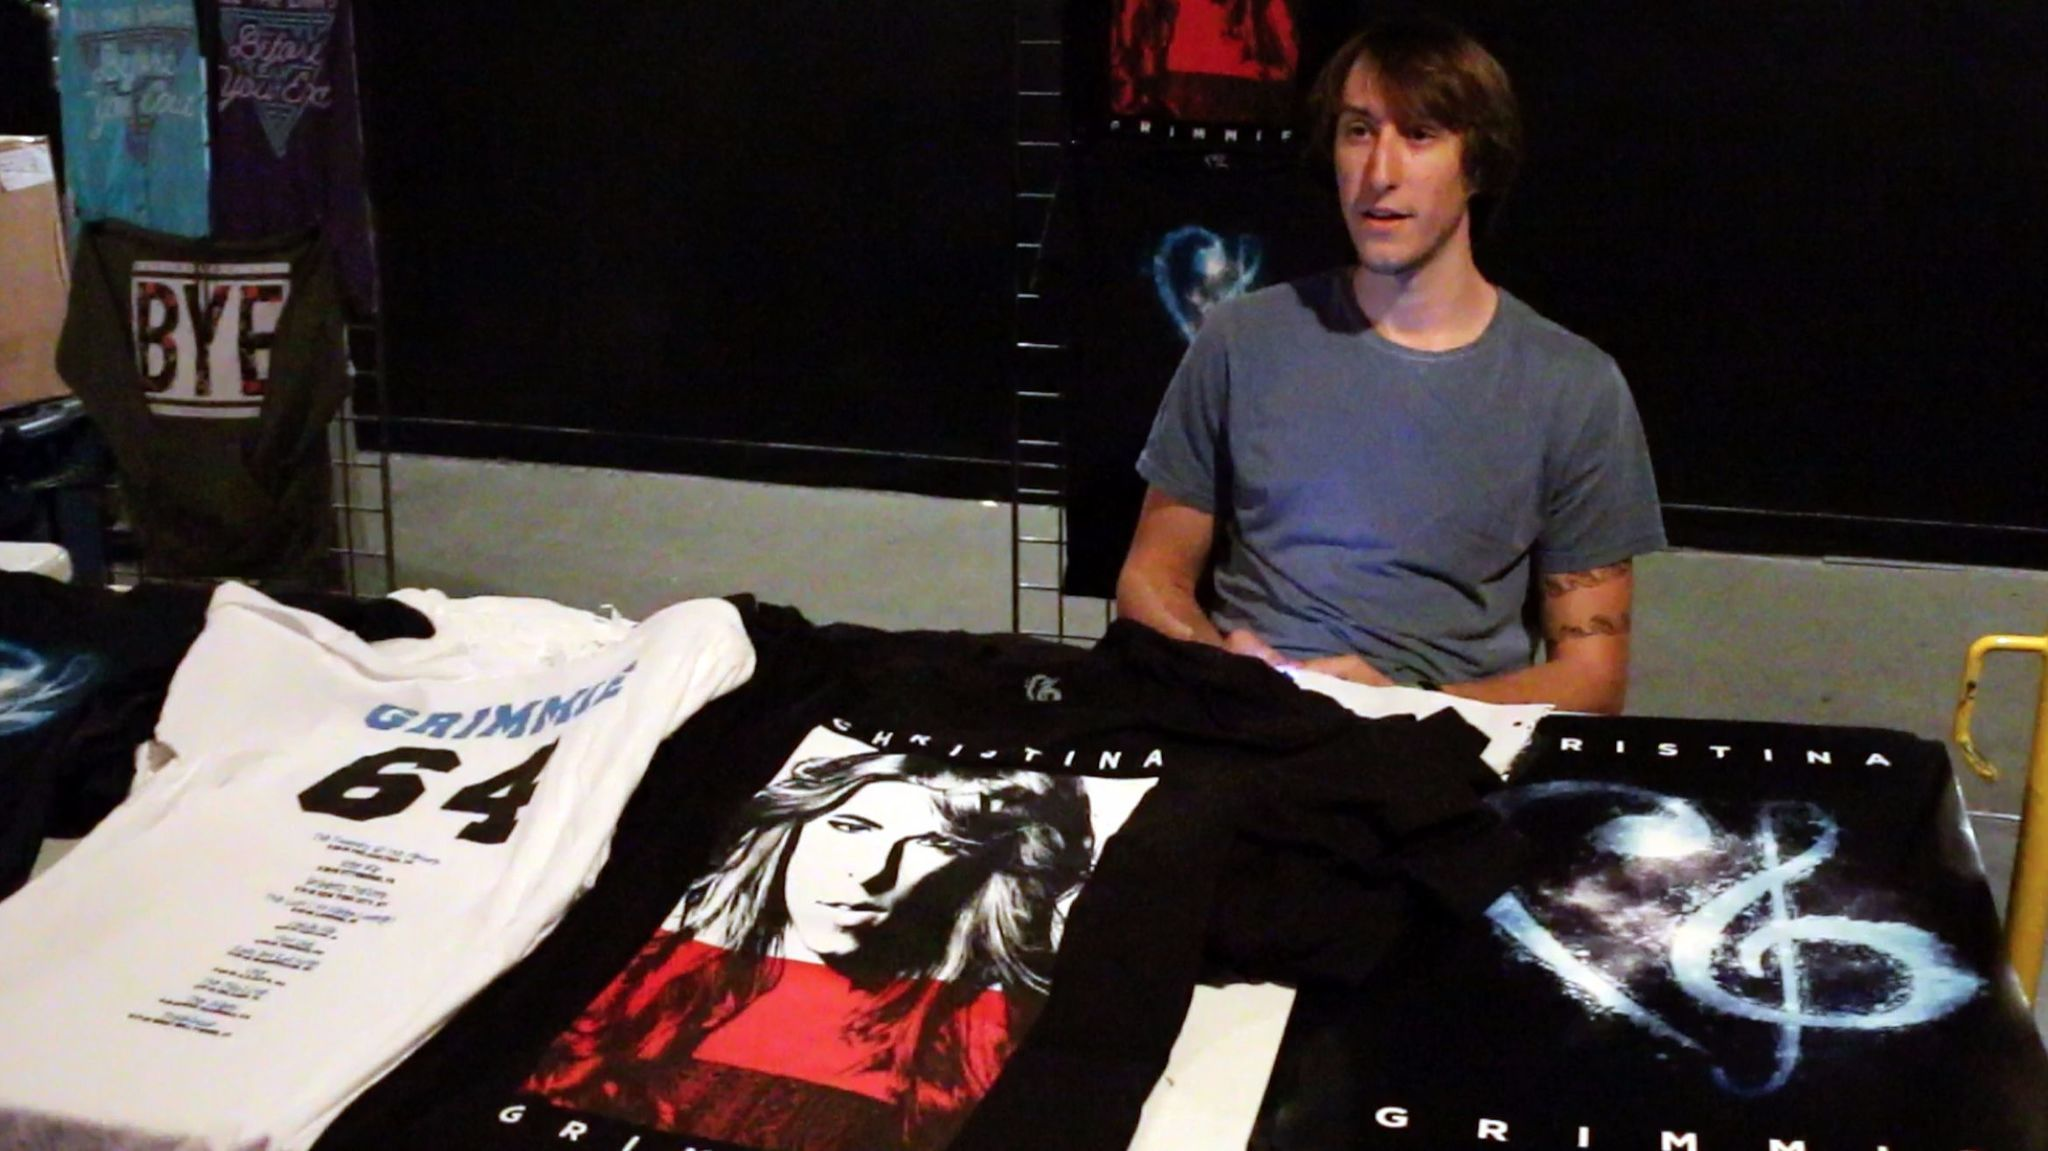 Mark Grimmie works the merchandise table at The Plaza Live on June 10.